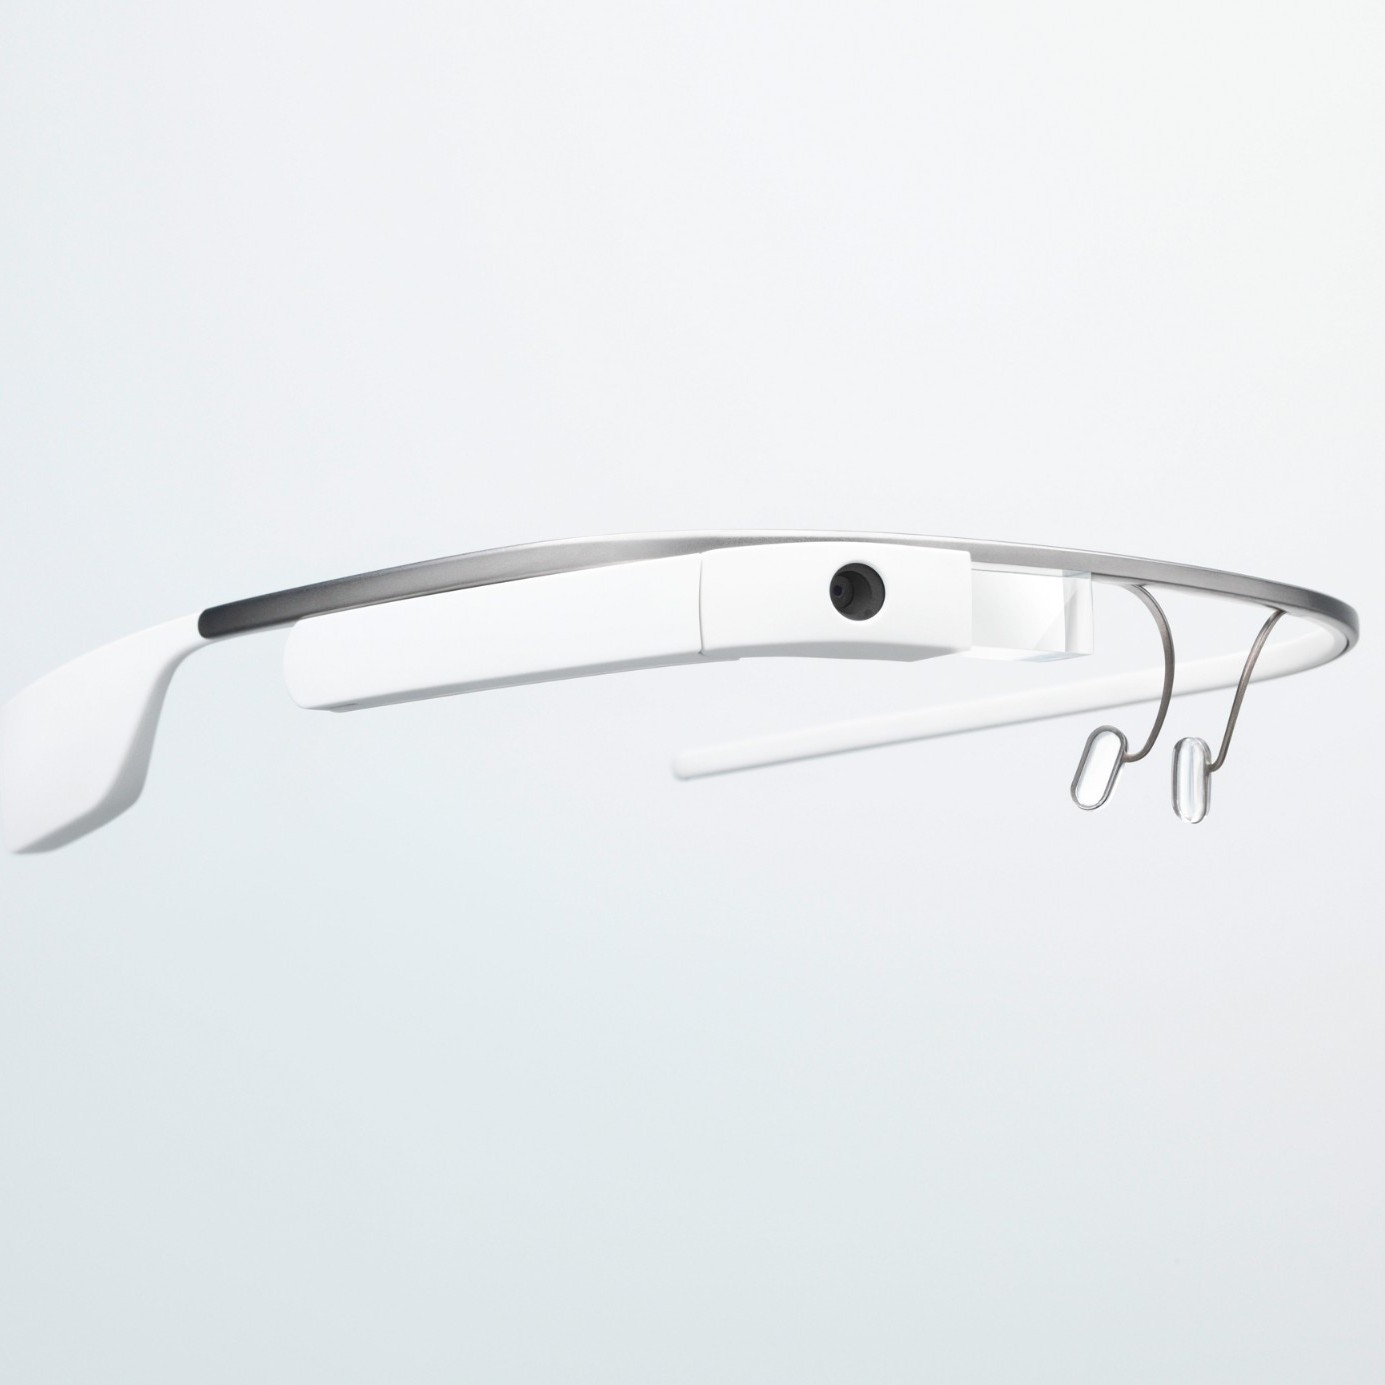 Google's Glass lets users send messages, video-chat, record video and take photos.